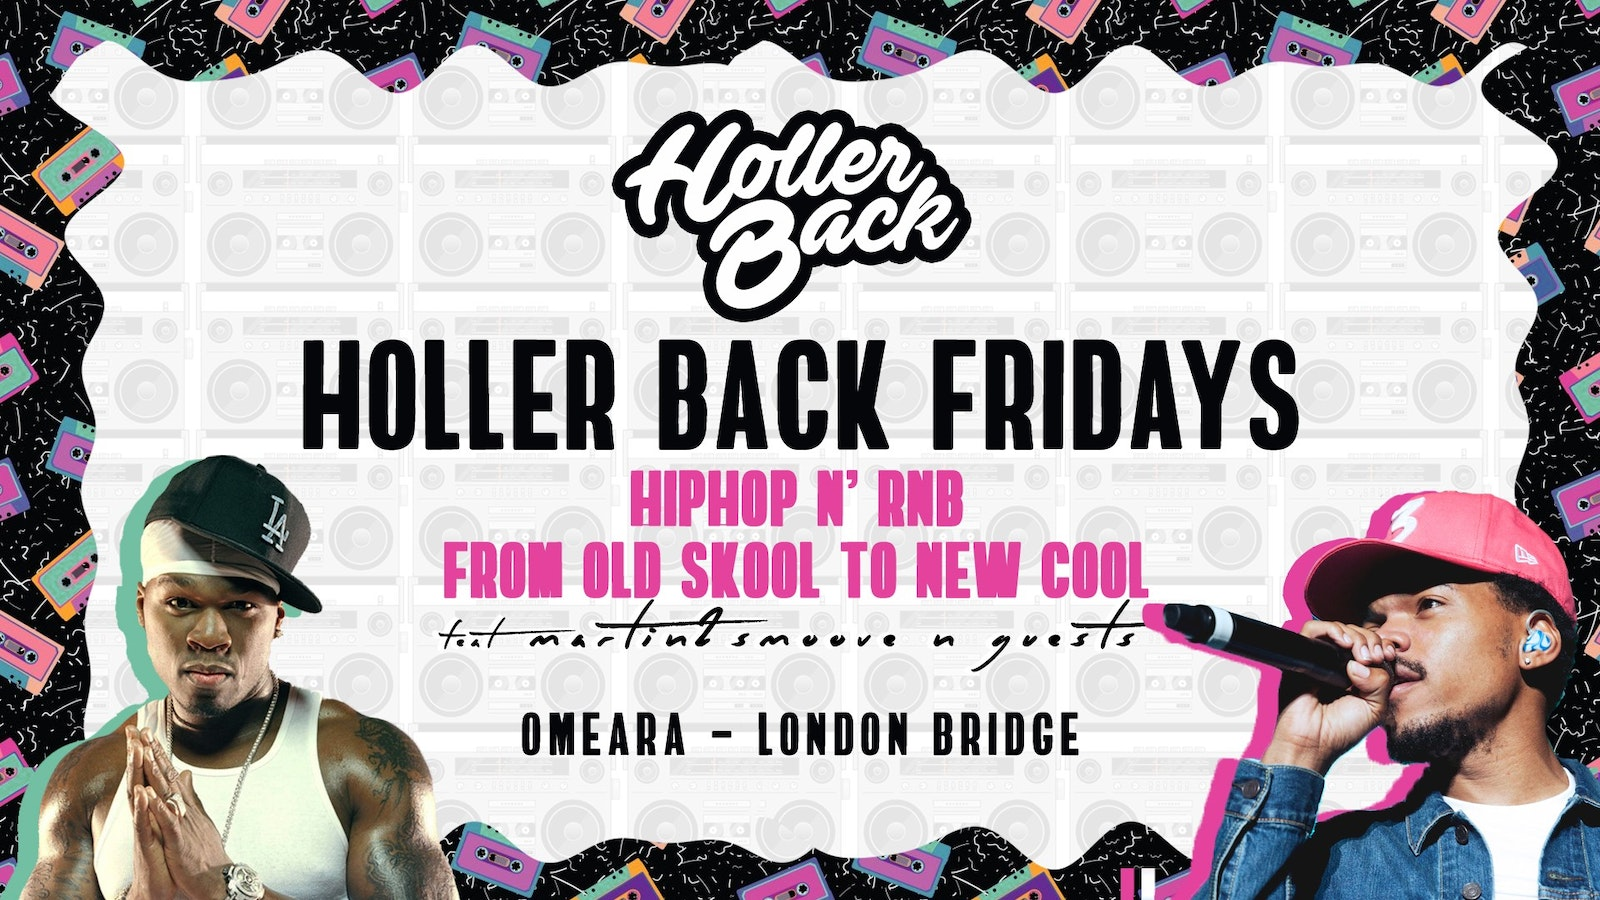 Holler Back – Hiphop & Rnb at Omeara London | Friday October 18th